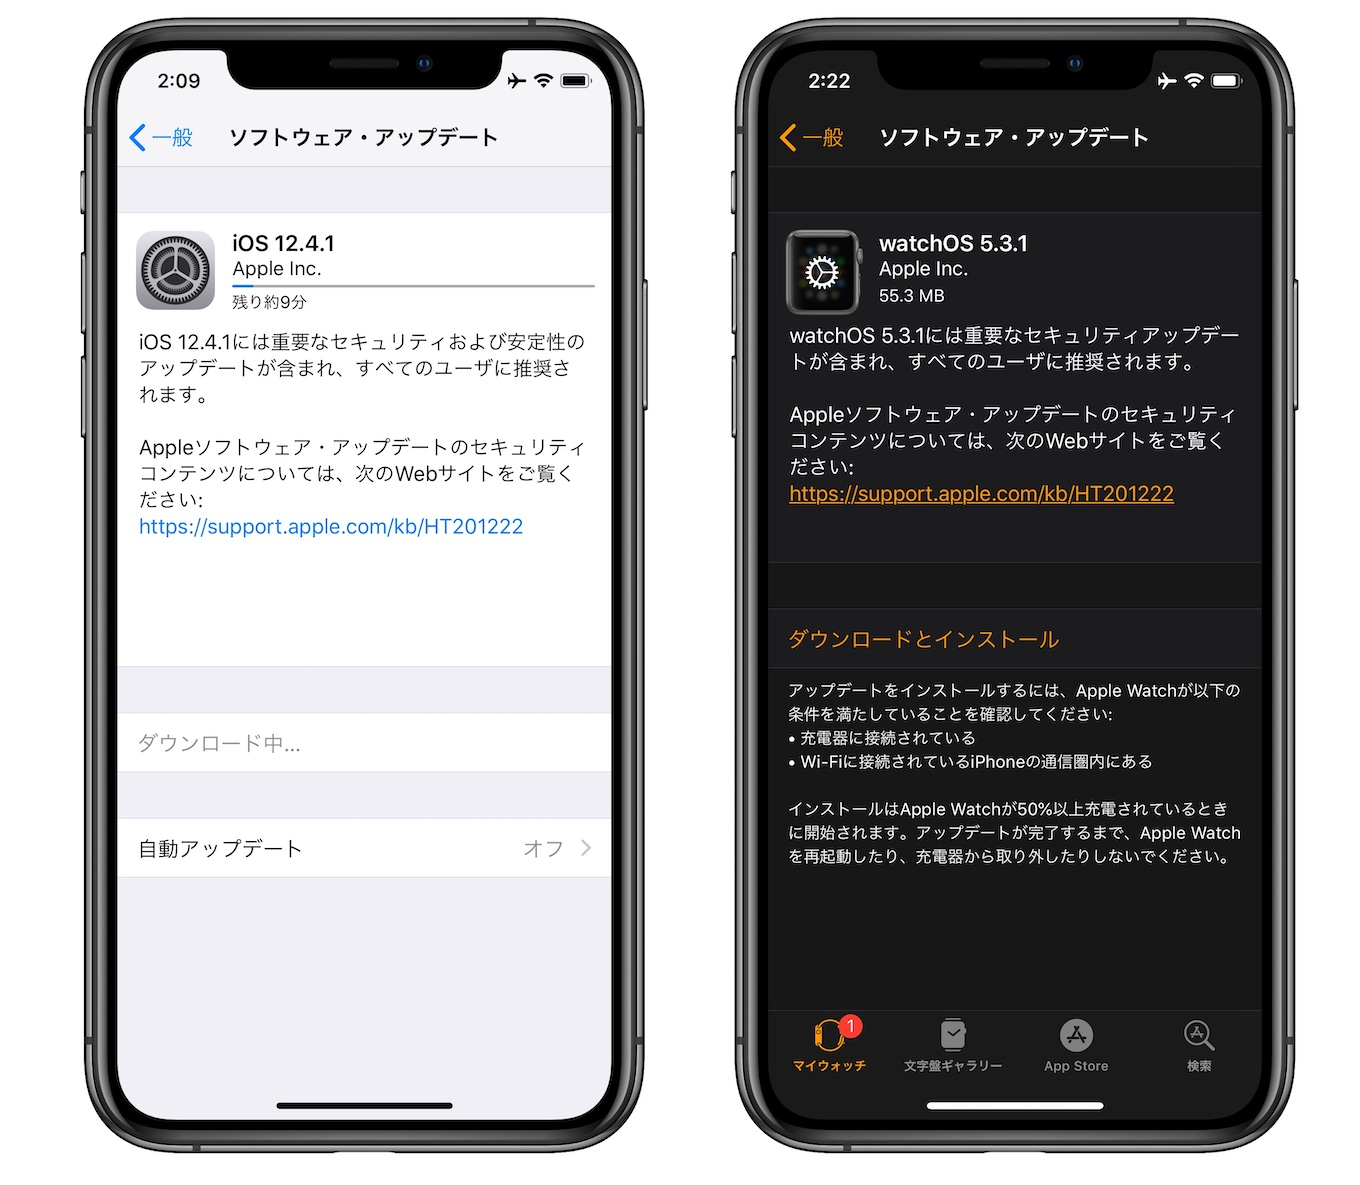 iOS 12.4.1 (16G102) watchOS 5.3.1 (16U600) tvOS 12.4.1 (16M600)